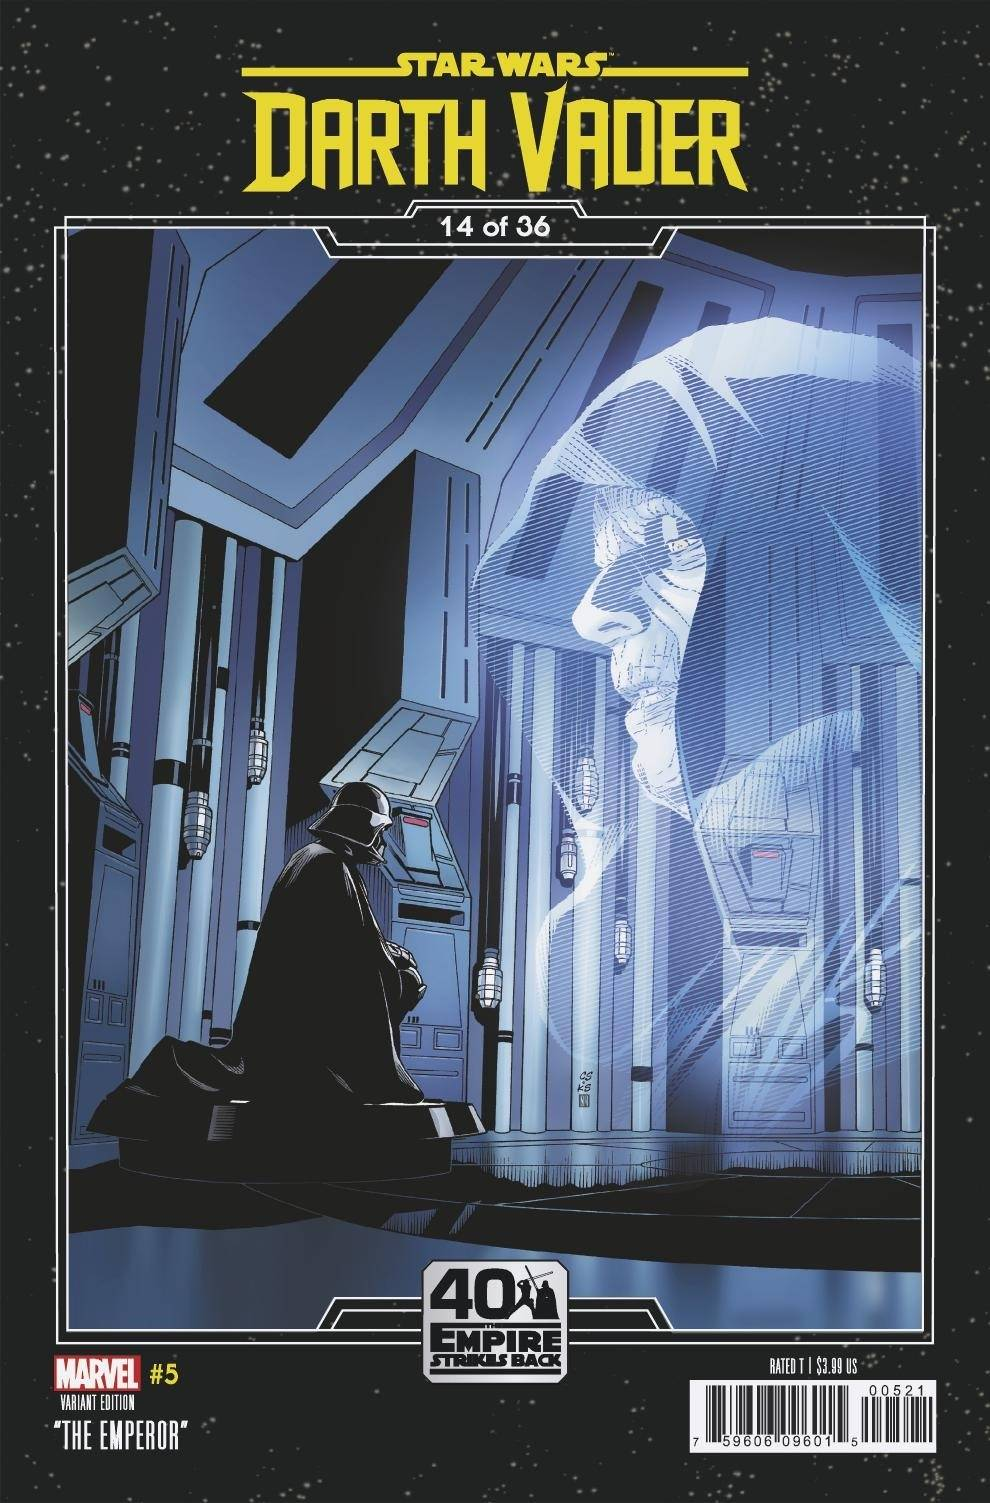 Darth Vader #5 (Chris Sprouse The Empire Strikes Back Variant Cover 14 of 36) (16.09.2020)